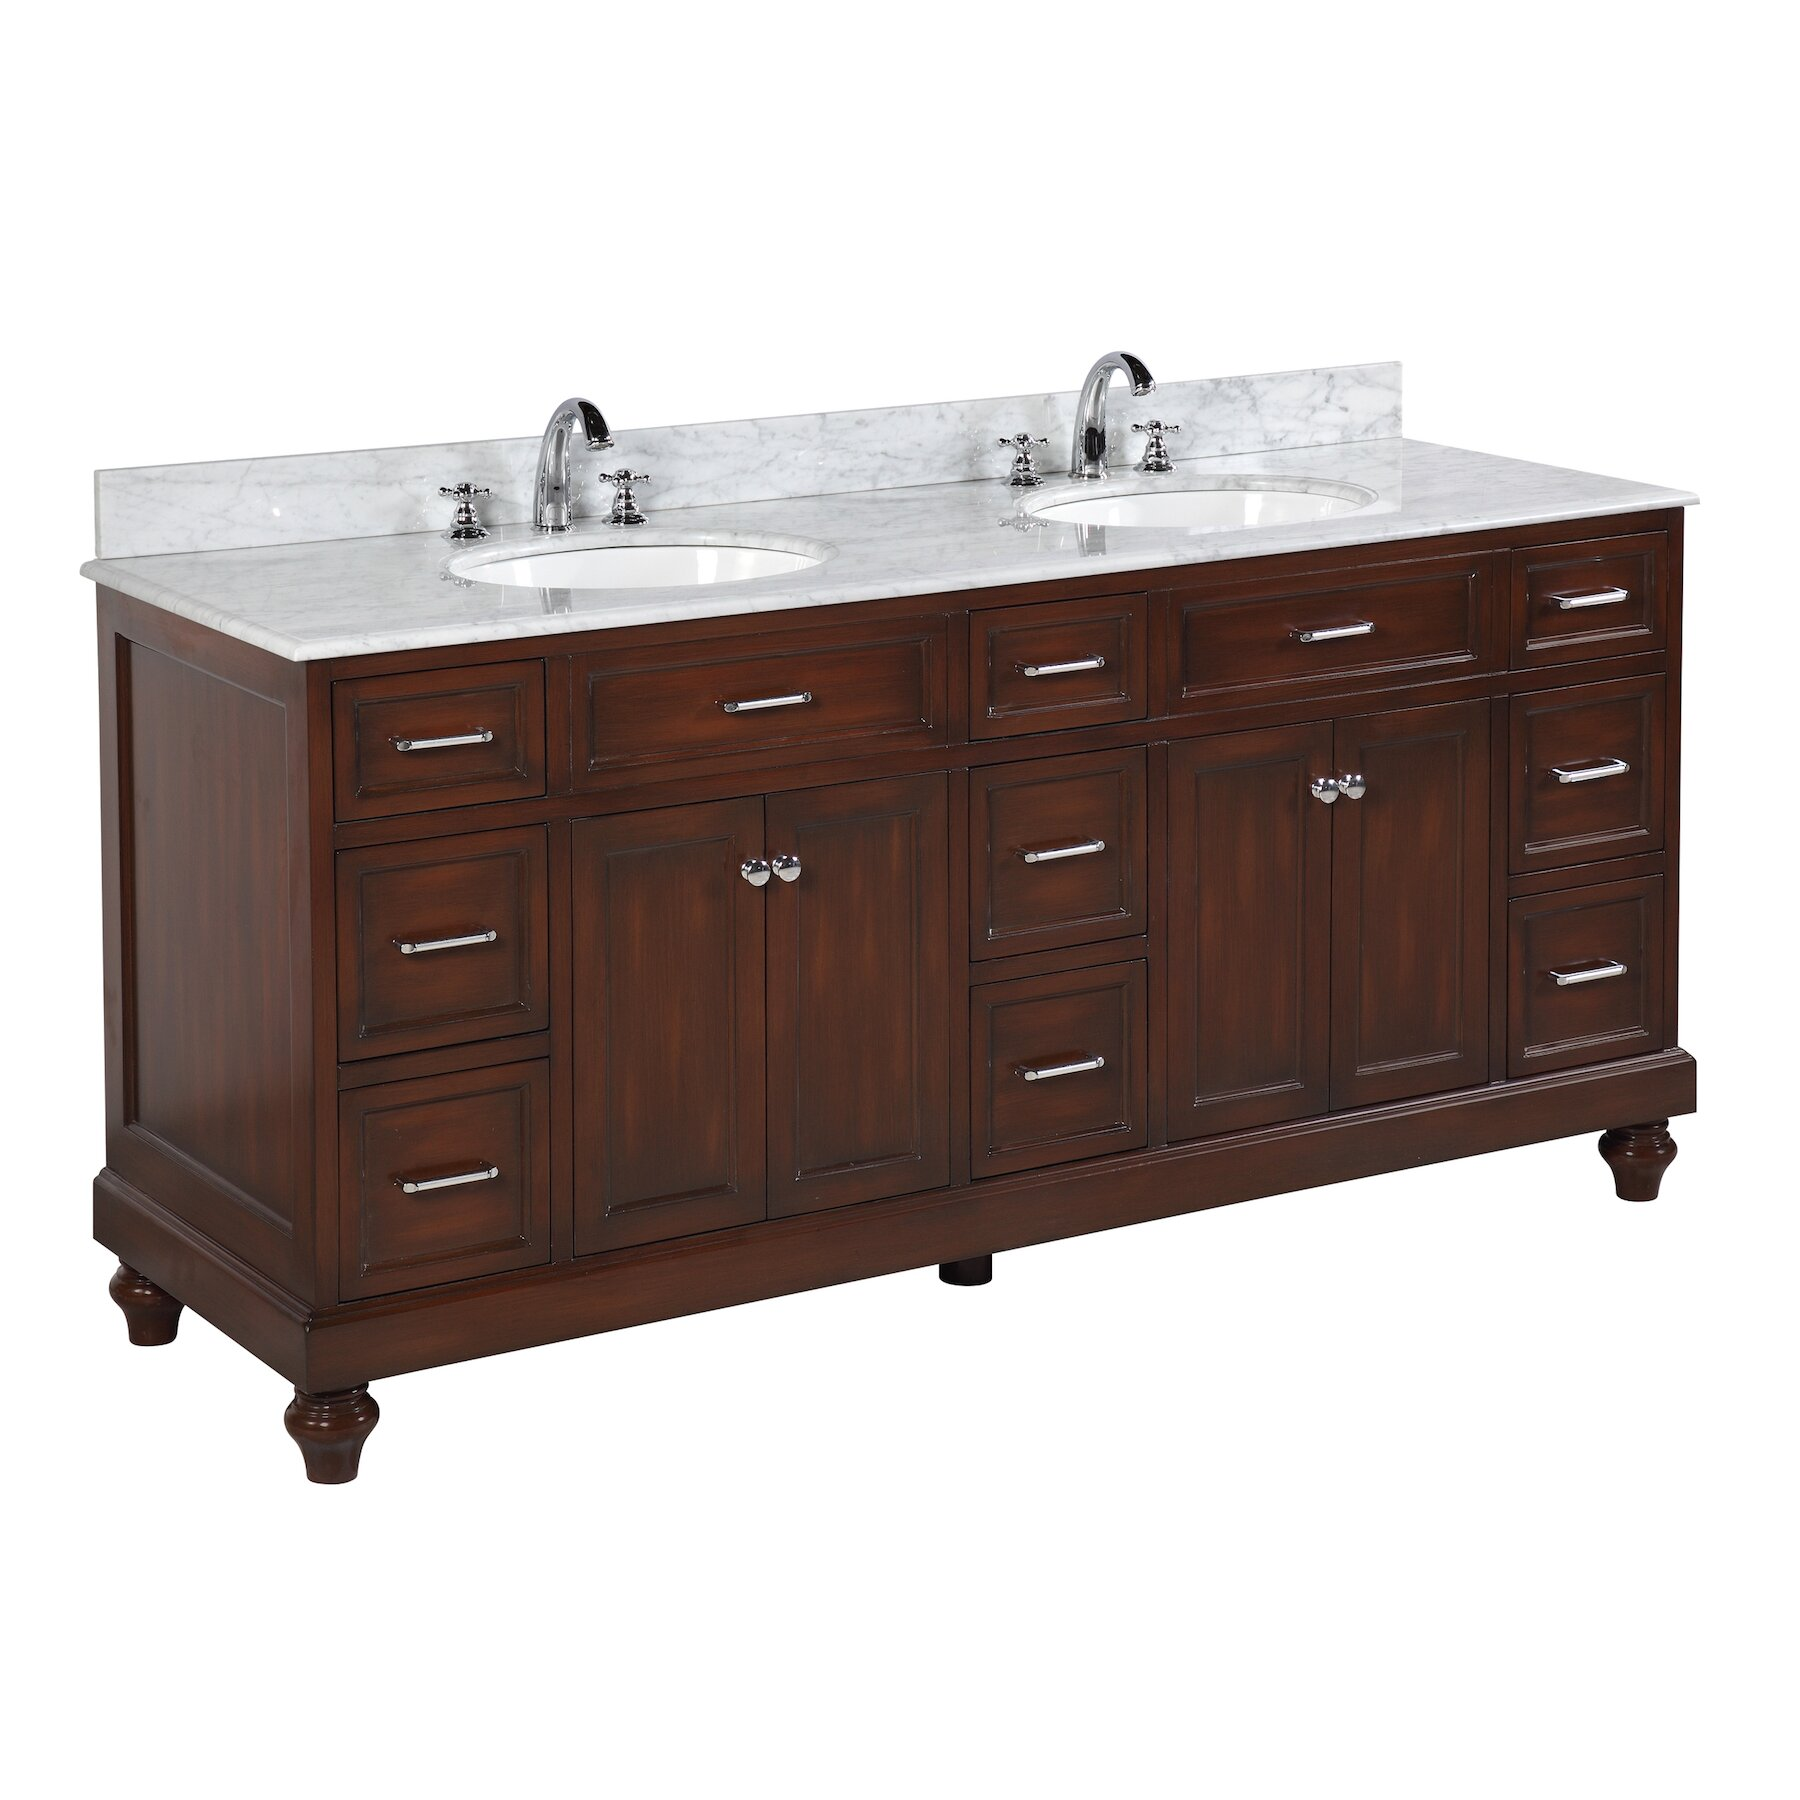 Kbc amelia 72 double bathroom vanity set reviews wayfair for Bath and vanity set